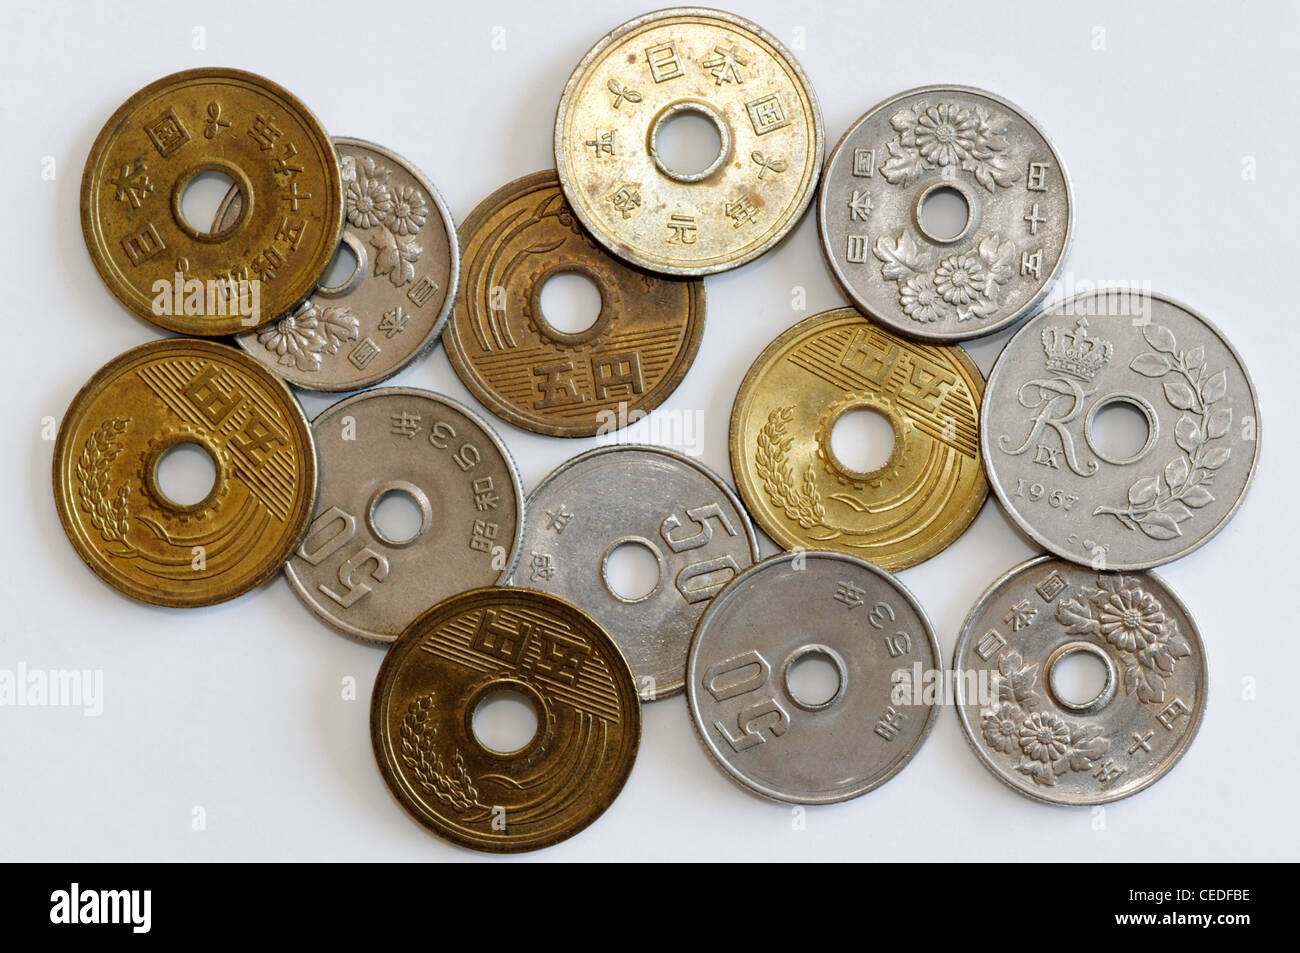 Kopfkissen Mit Loch In Der Mitte Coins With A Hole In The Middle Stock Photo 43323378 Alamy